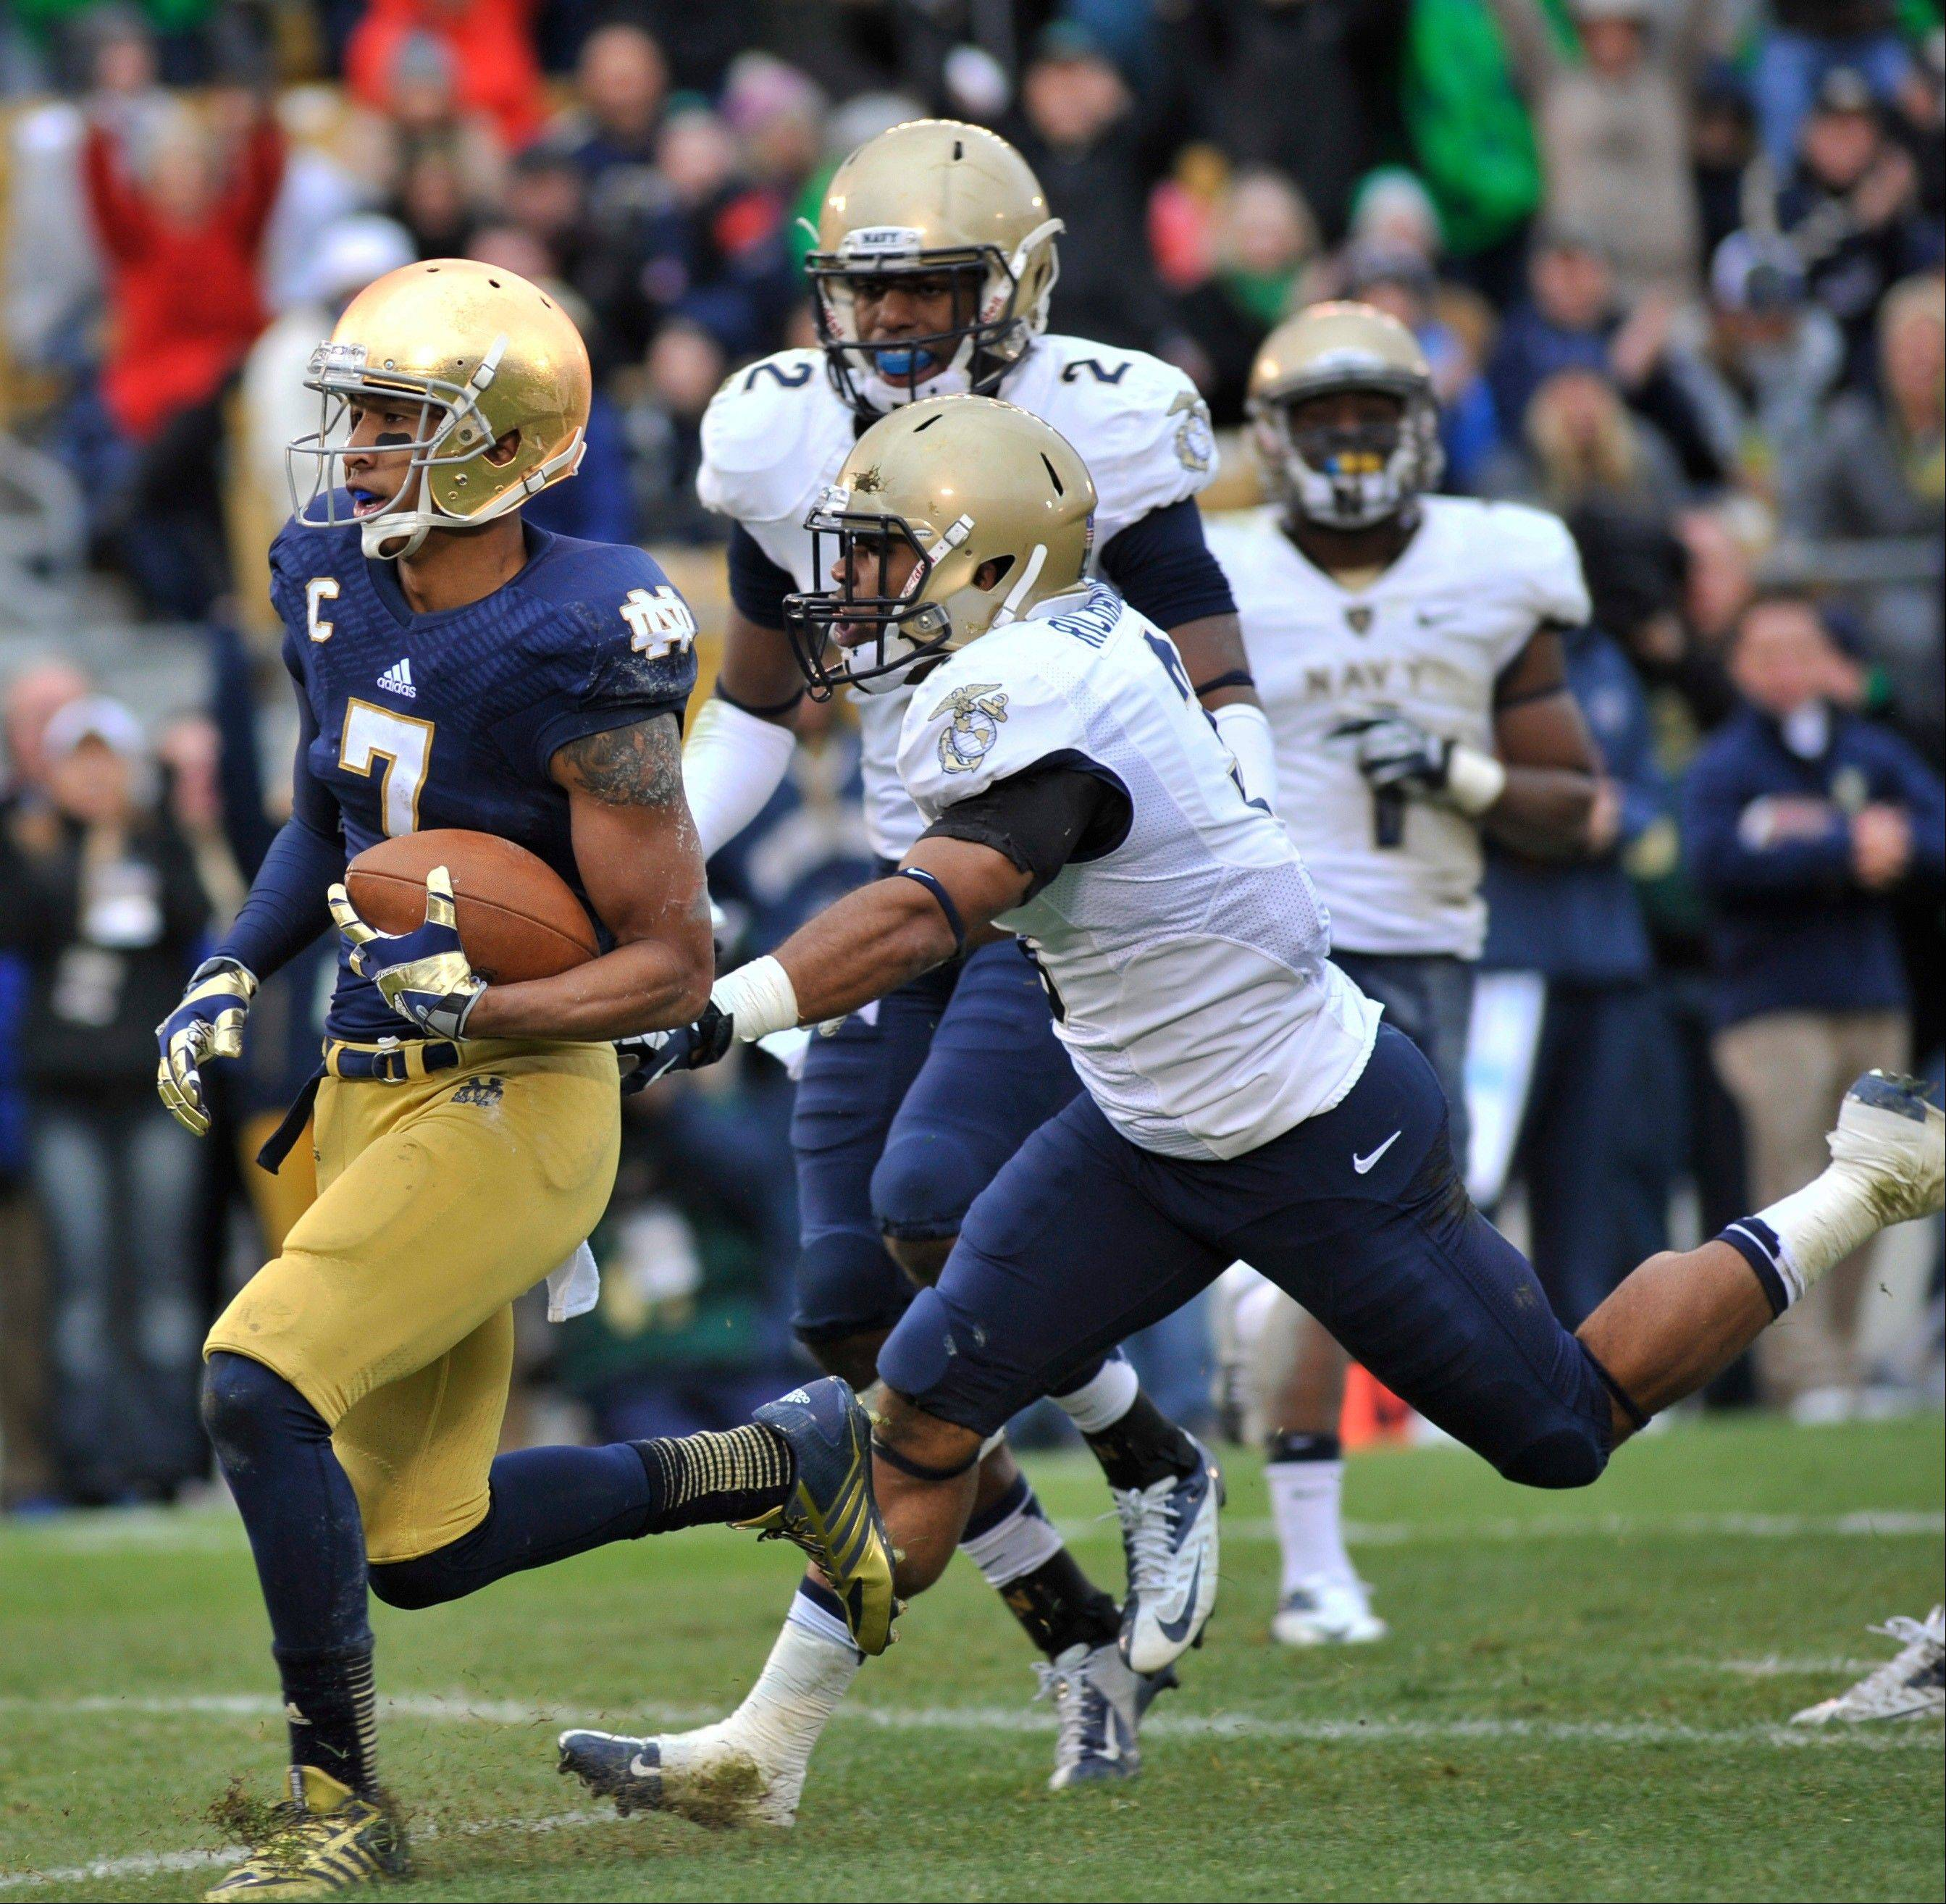 Notre Dame wide receiver TJ Jones crosses the goal line as Navy cornerback Lonnie Richardson closes in the first half in South Bend, Ind.